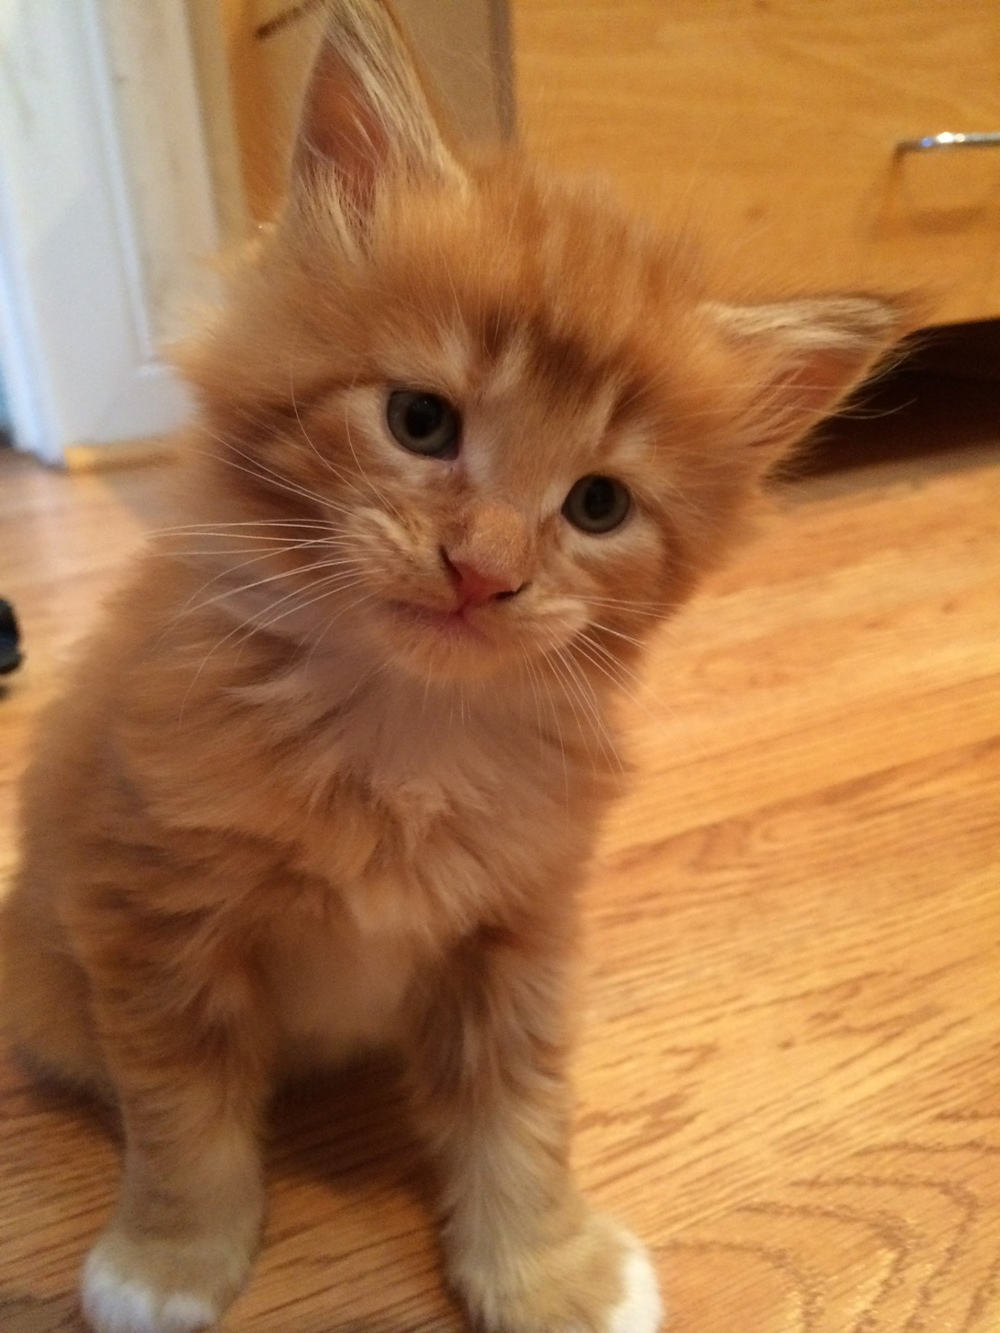 Meet Rowan (as a kitten), the Maine Coon